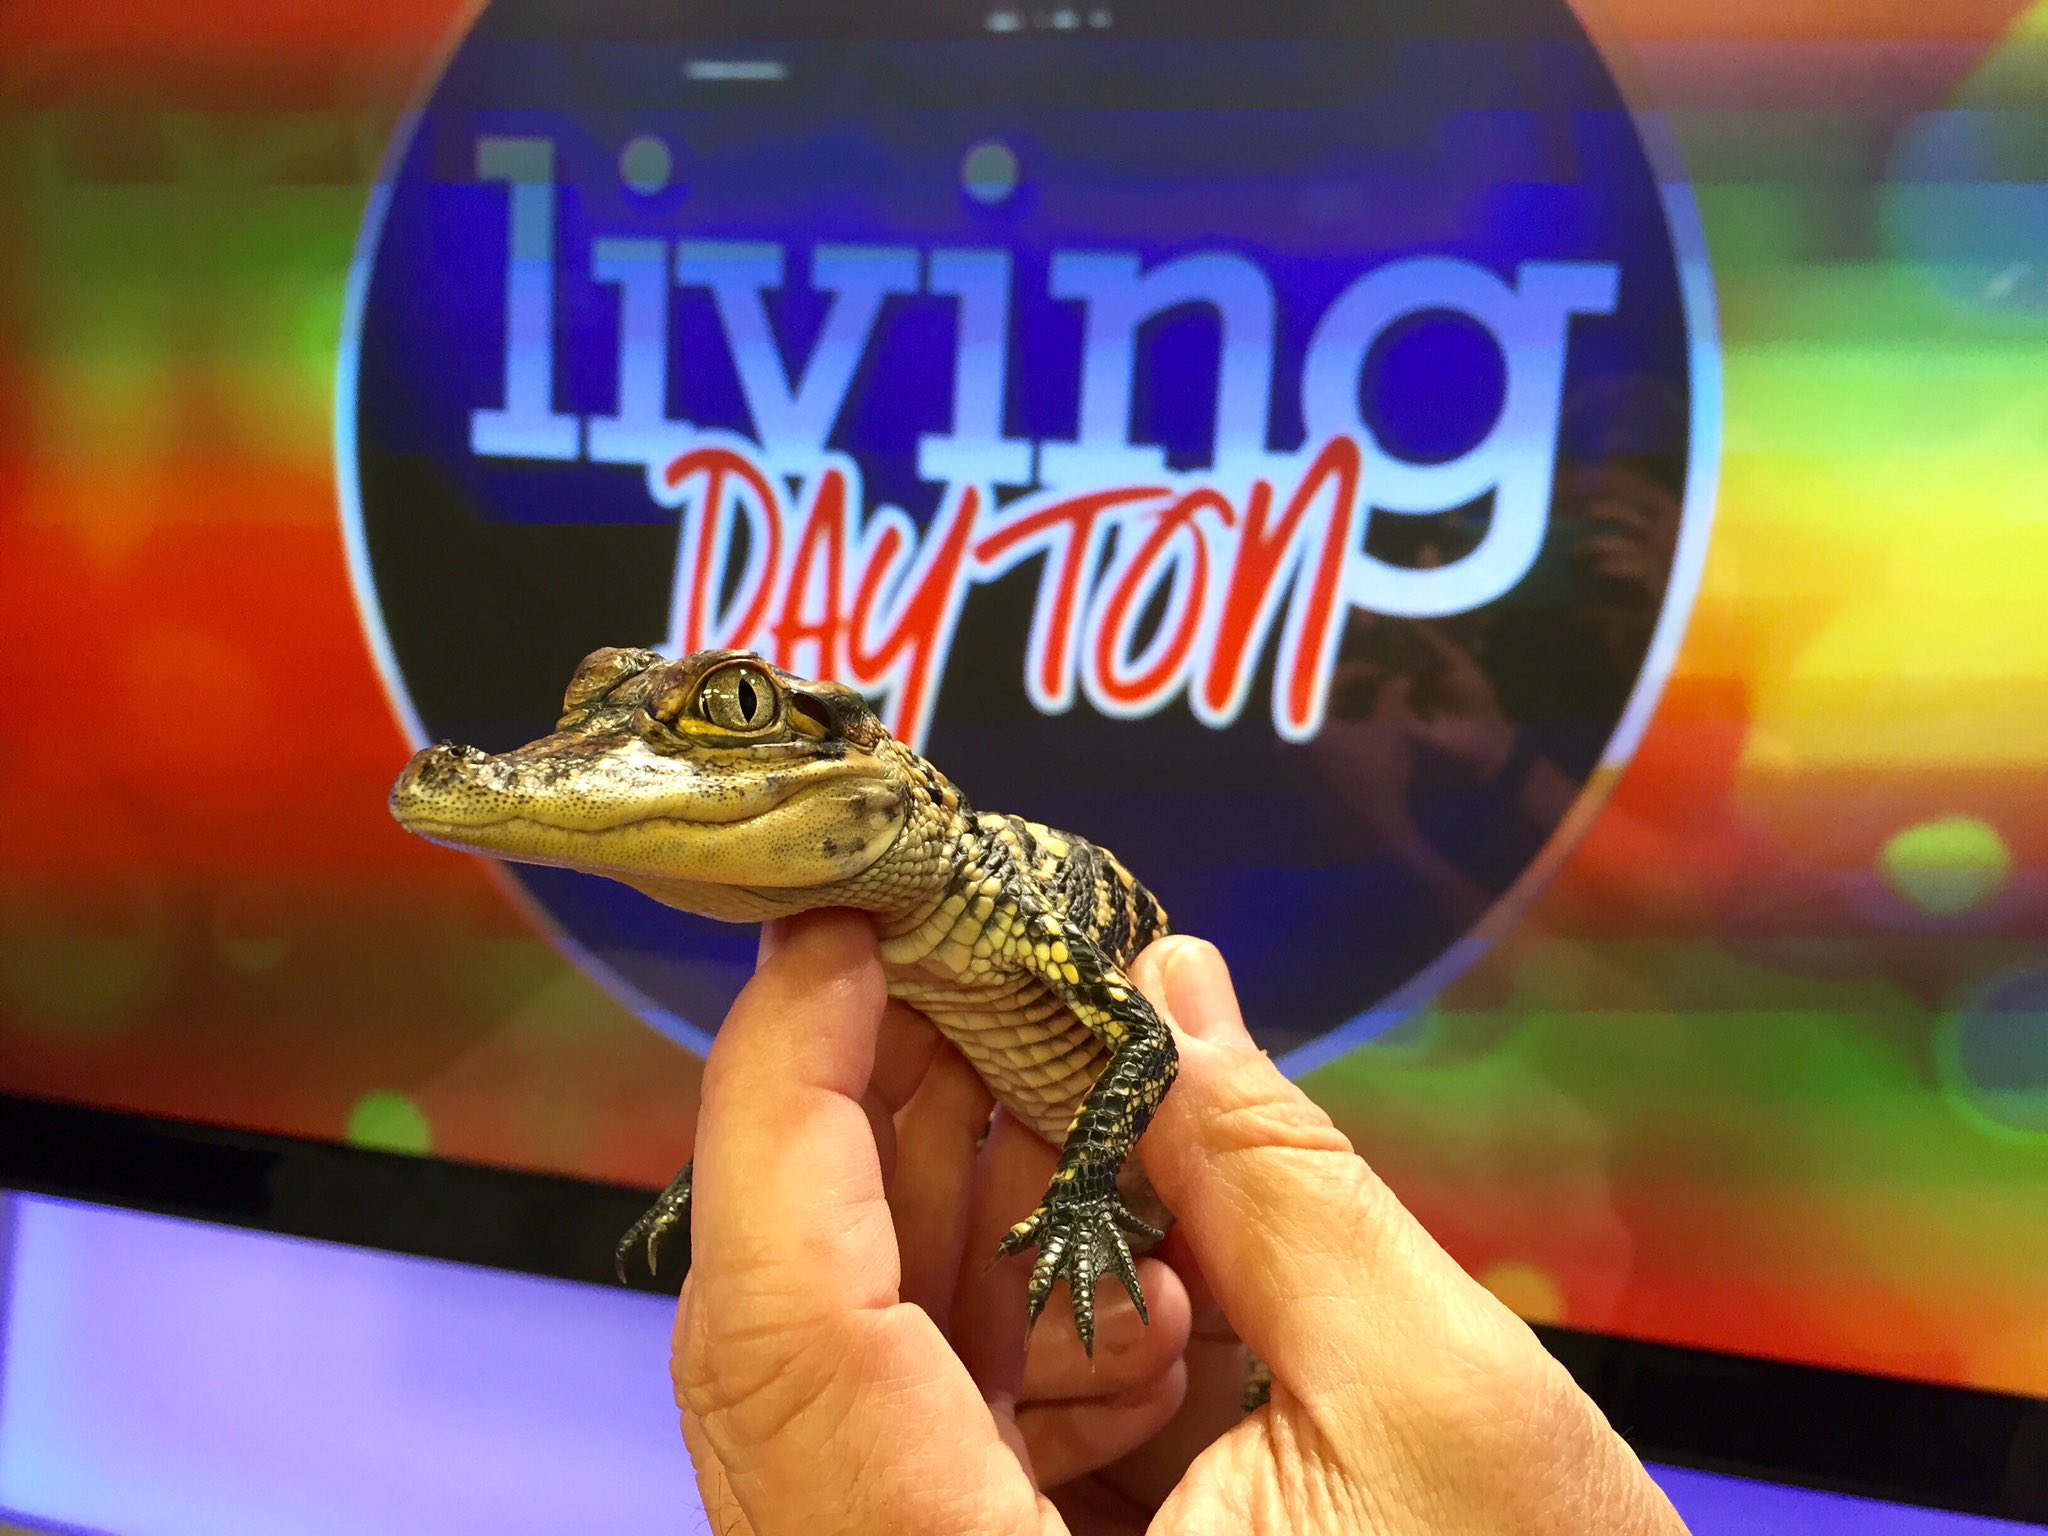 Smile for the camera - DYK an #alligator goes through 3,000 teeth in a lifetime #DiscovertheWonder @livingdaytontv https://t.co/dMydTwpetp